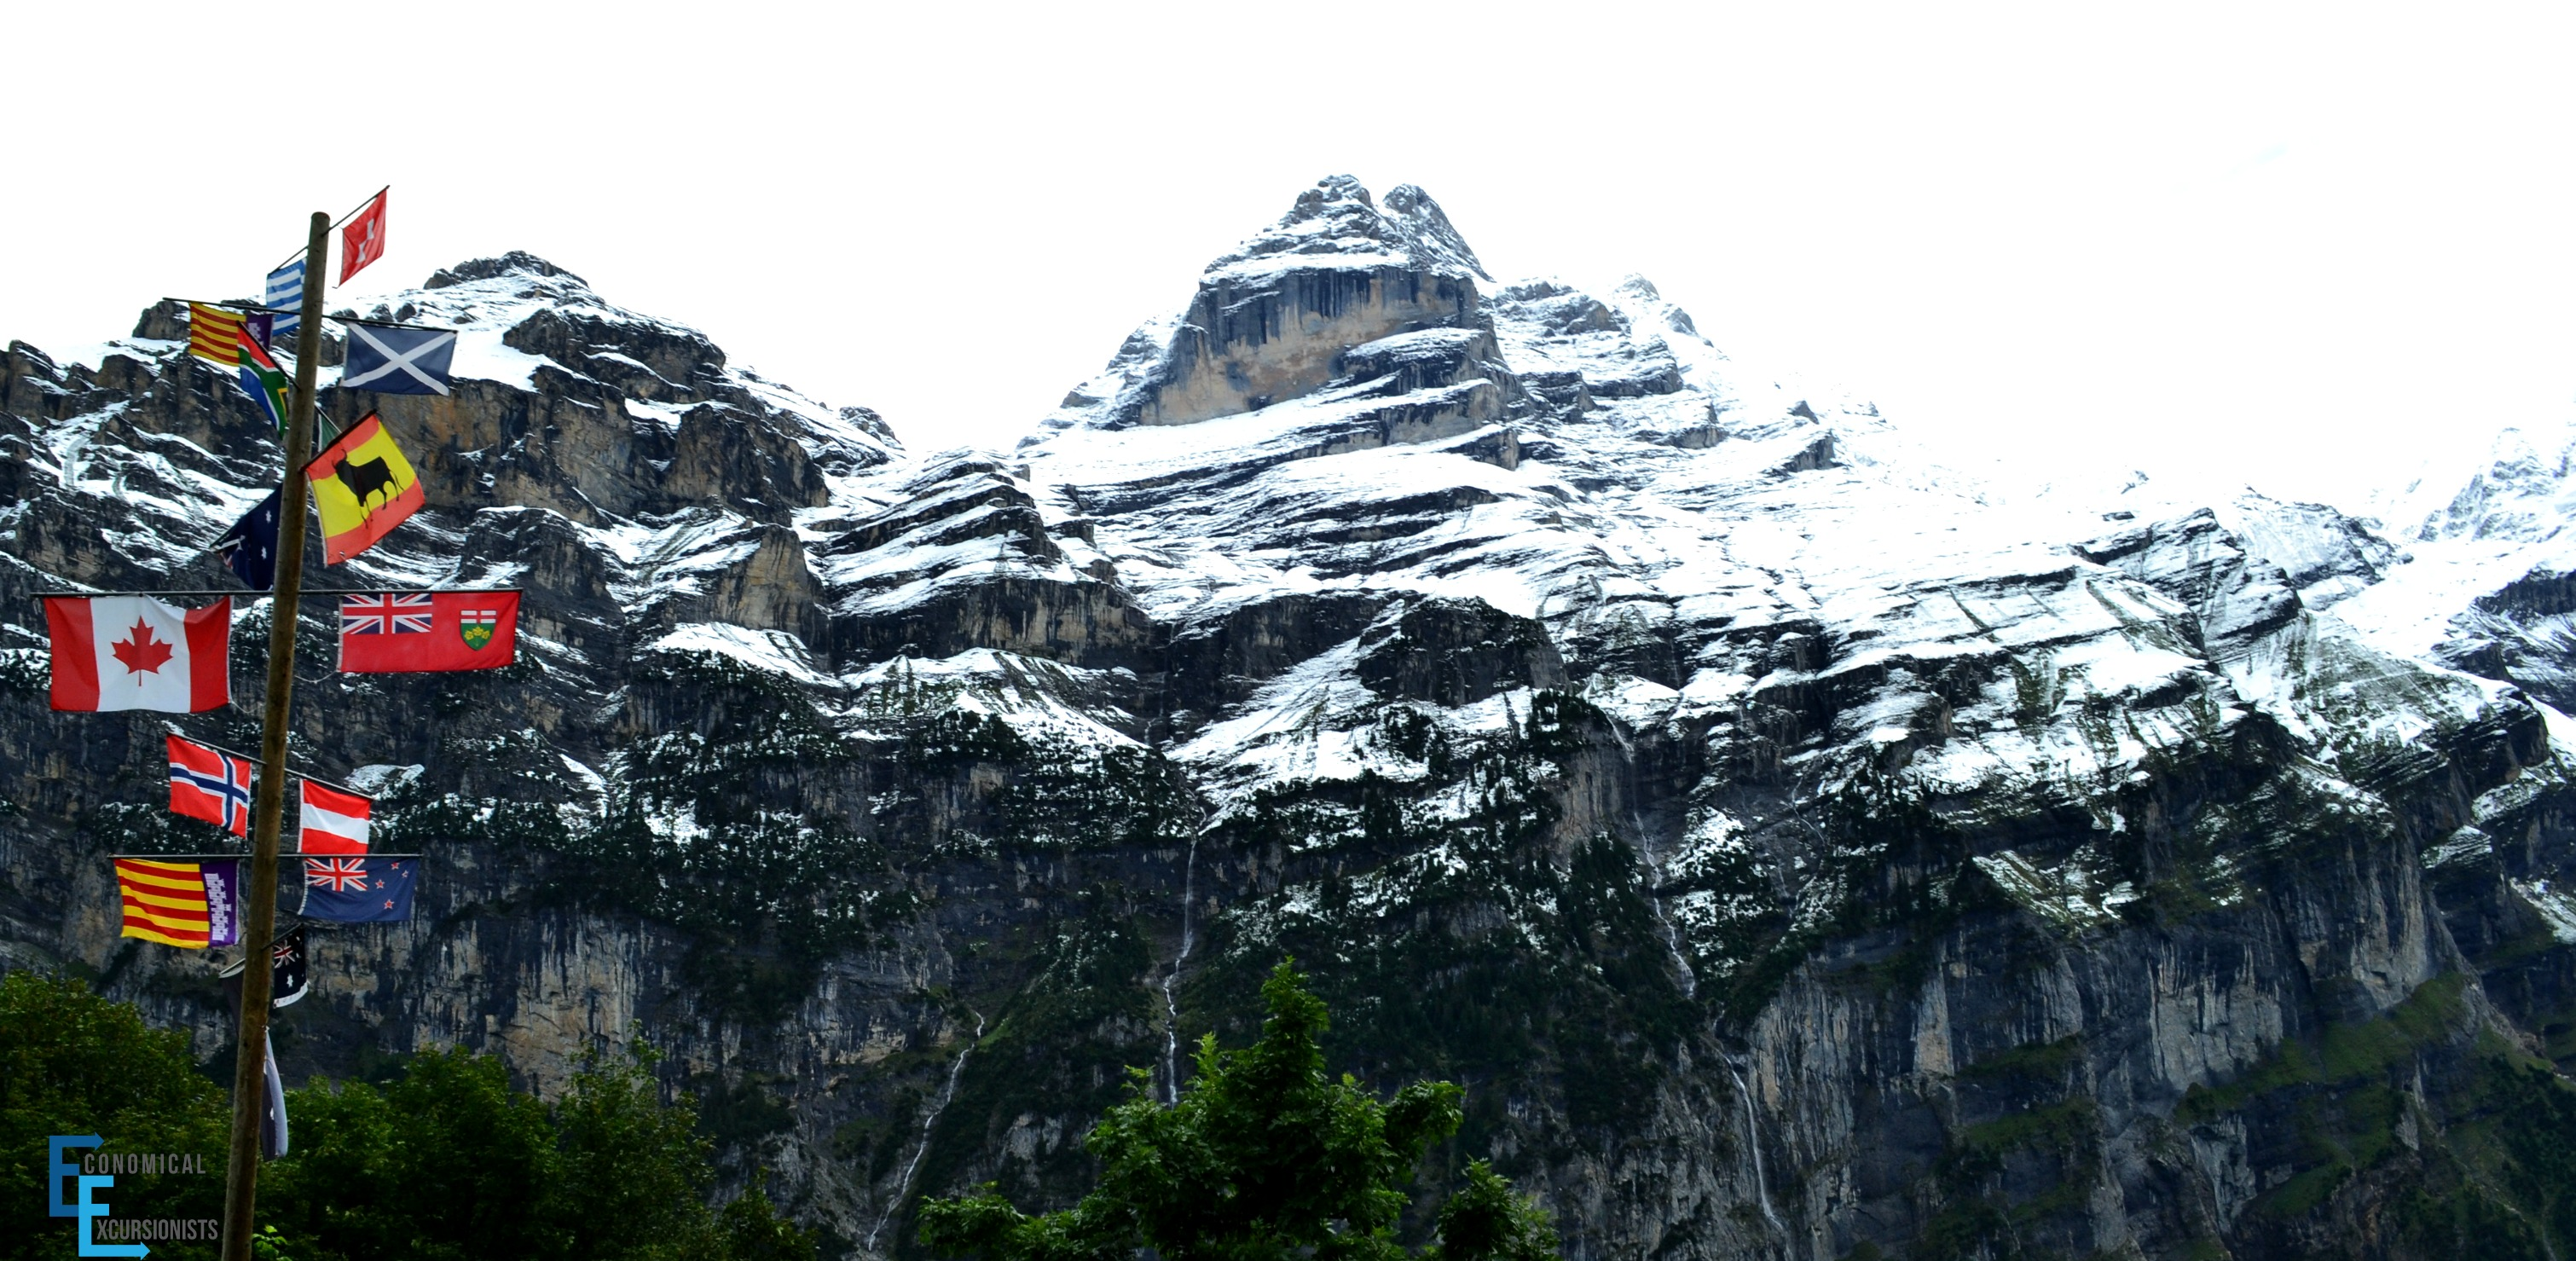 Gimmelwald: could this be heaven on Earth?